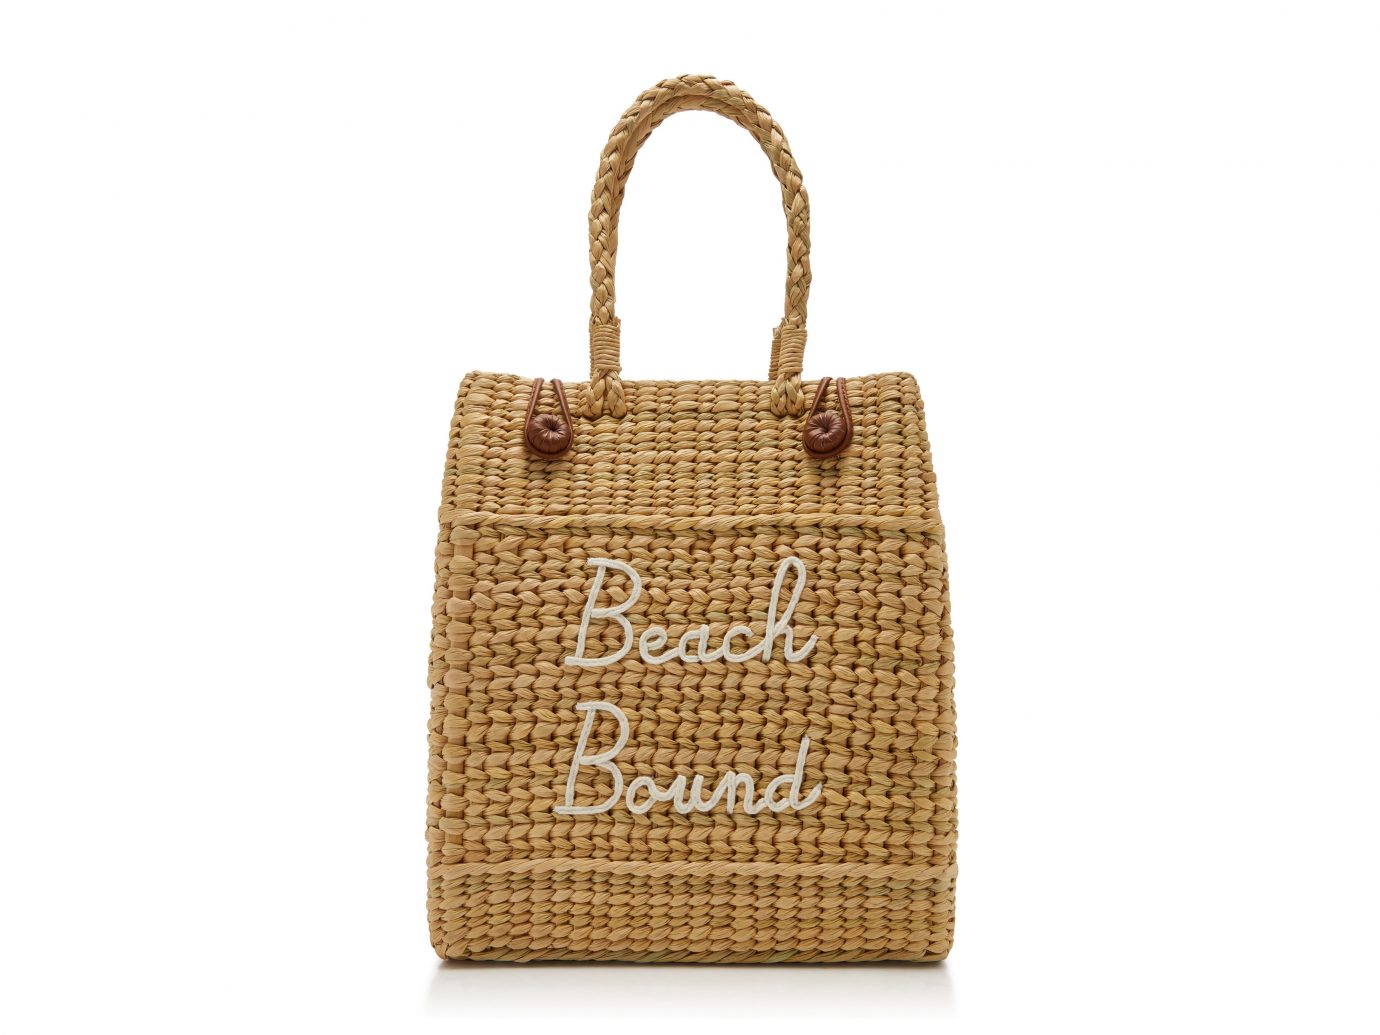 Poolside The Nines Embroidered Straw Tote Beach Bound